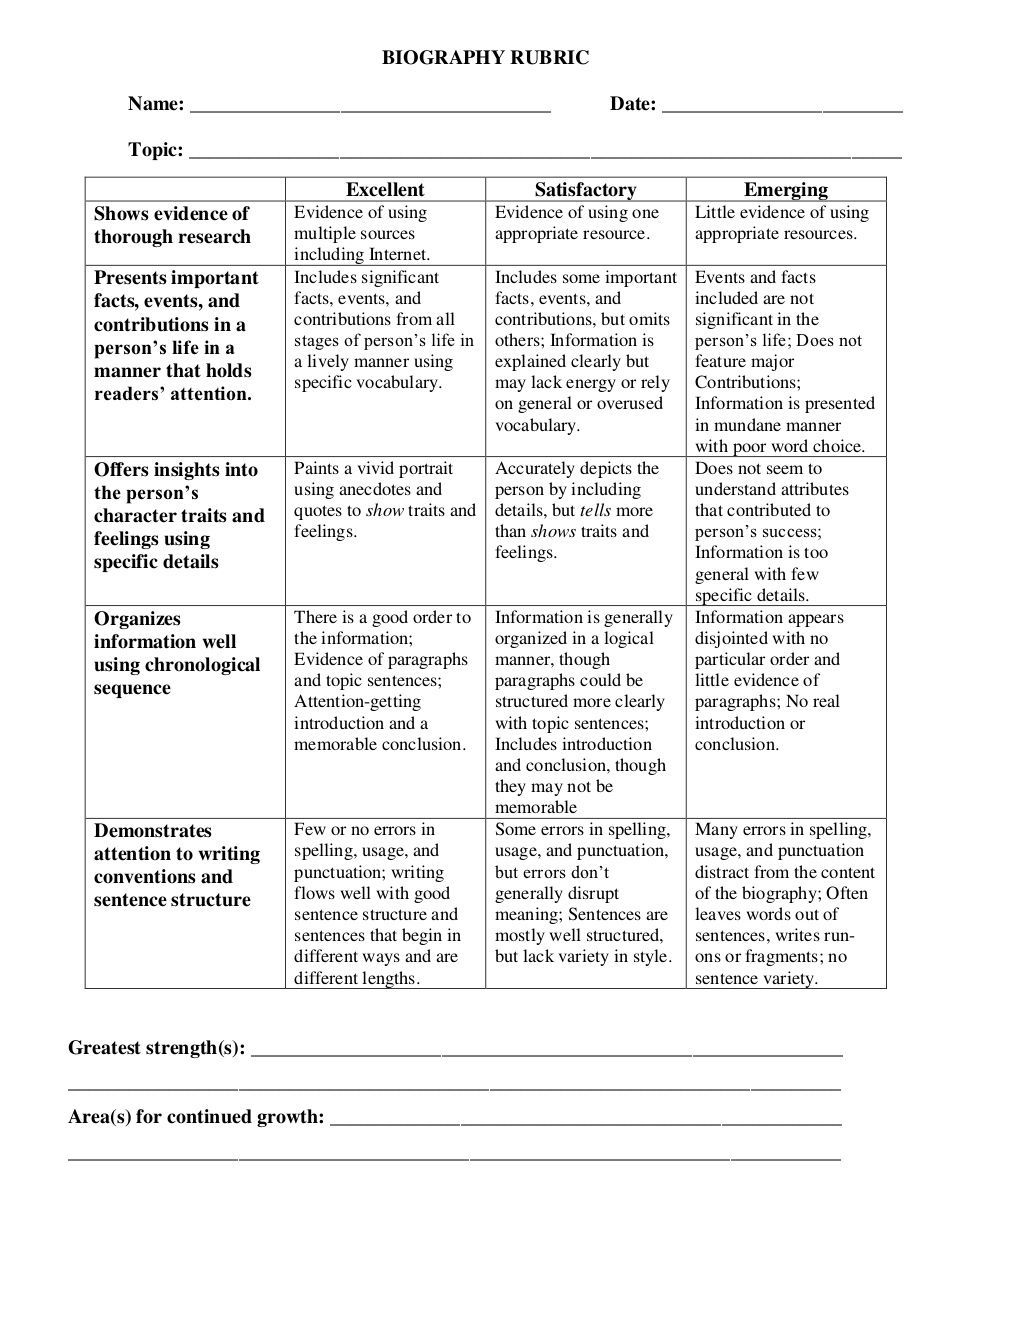 Image Result For Writing Well About Reading Rubric